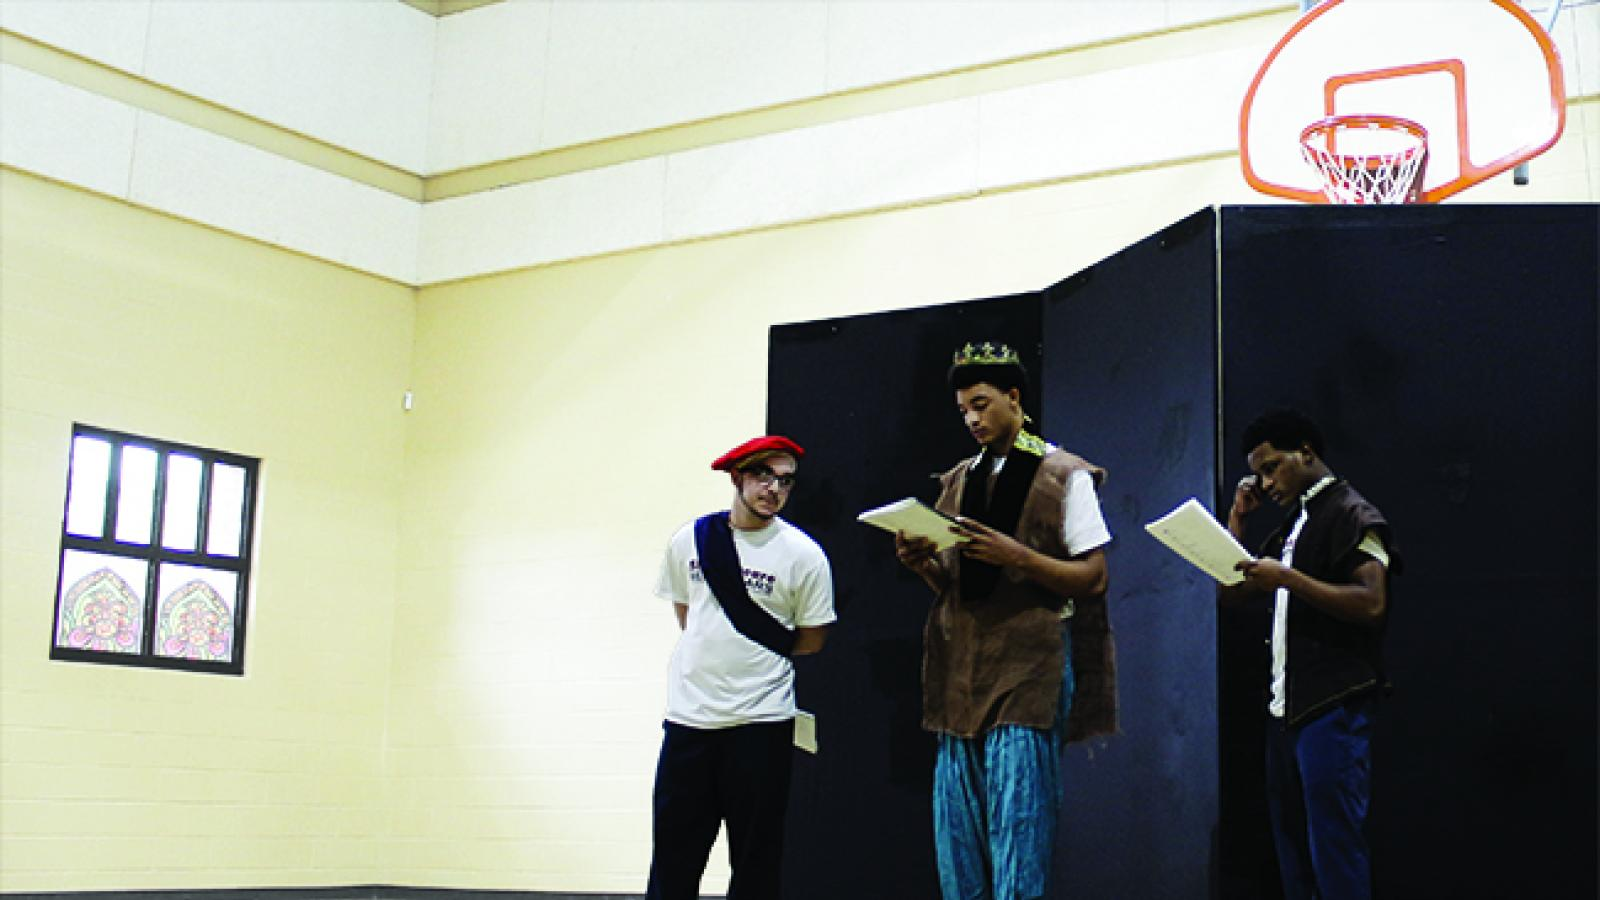 Three young men wearing costumes read from scripts in a gymnasium